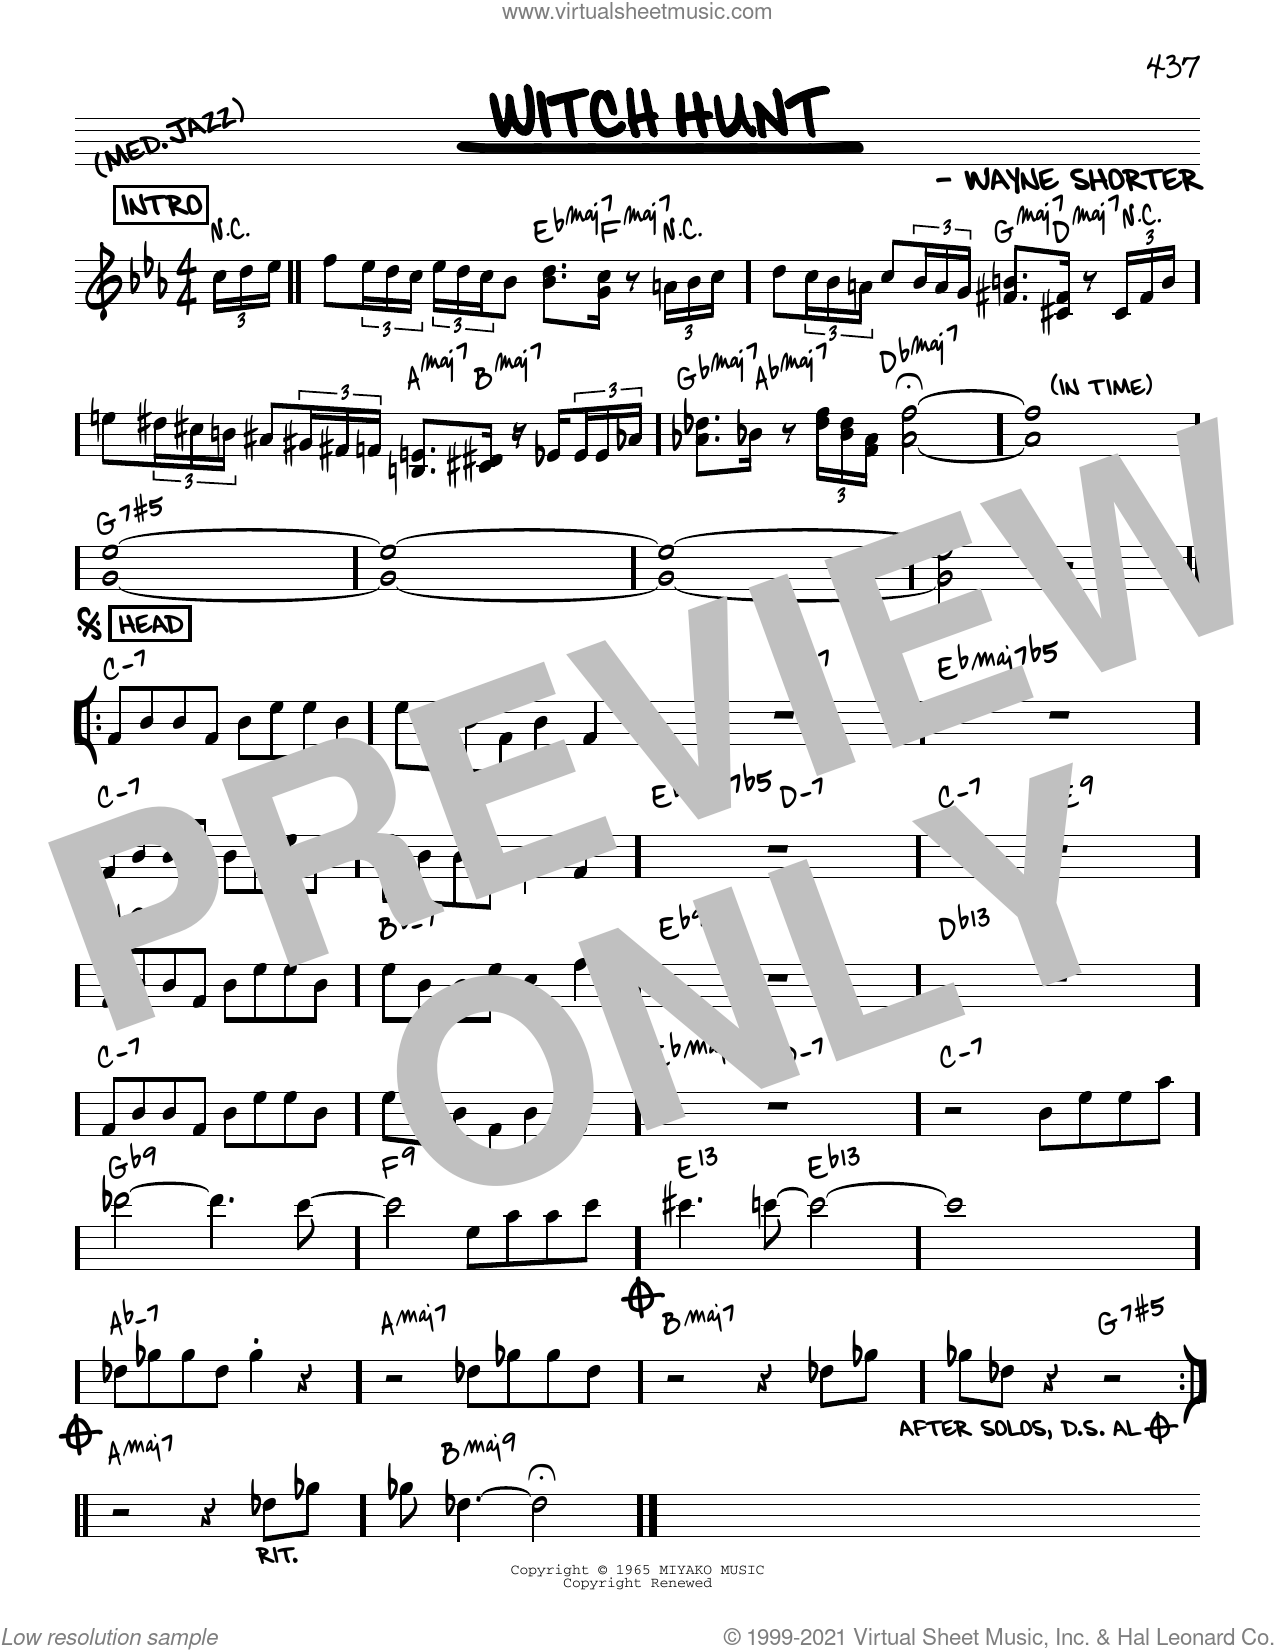 Witch Hunt [Reharmonized version] (arr. Jack Grassel) sheet music for voice and other instruments (real book) by Wayne Shorter and Jack Grassel, intermediate skill level